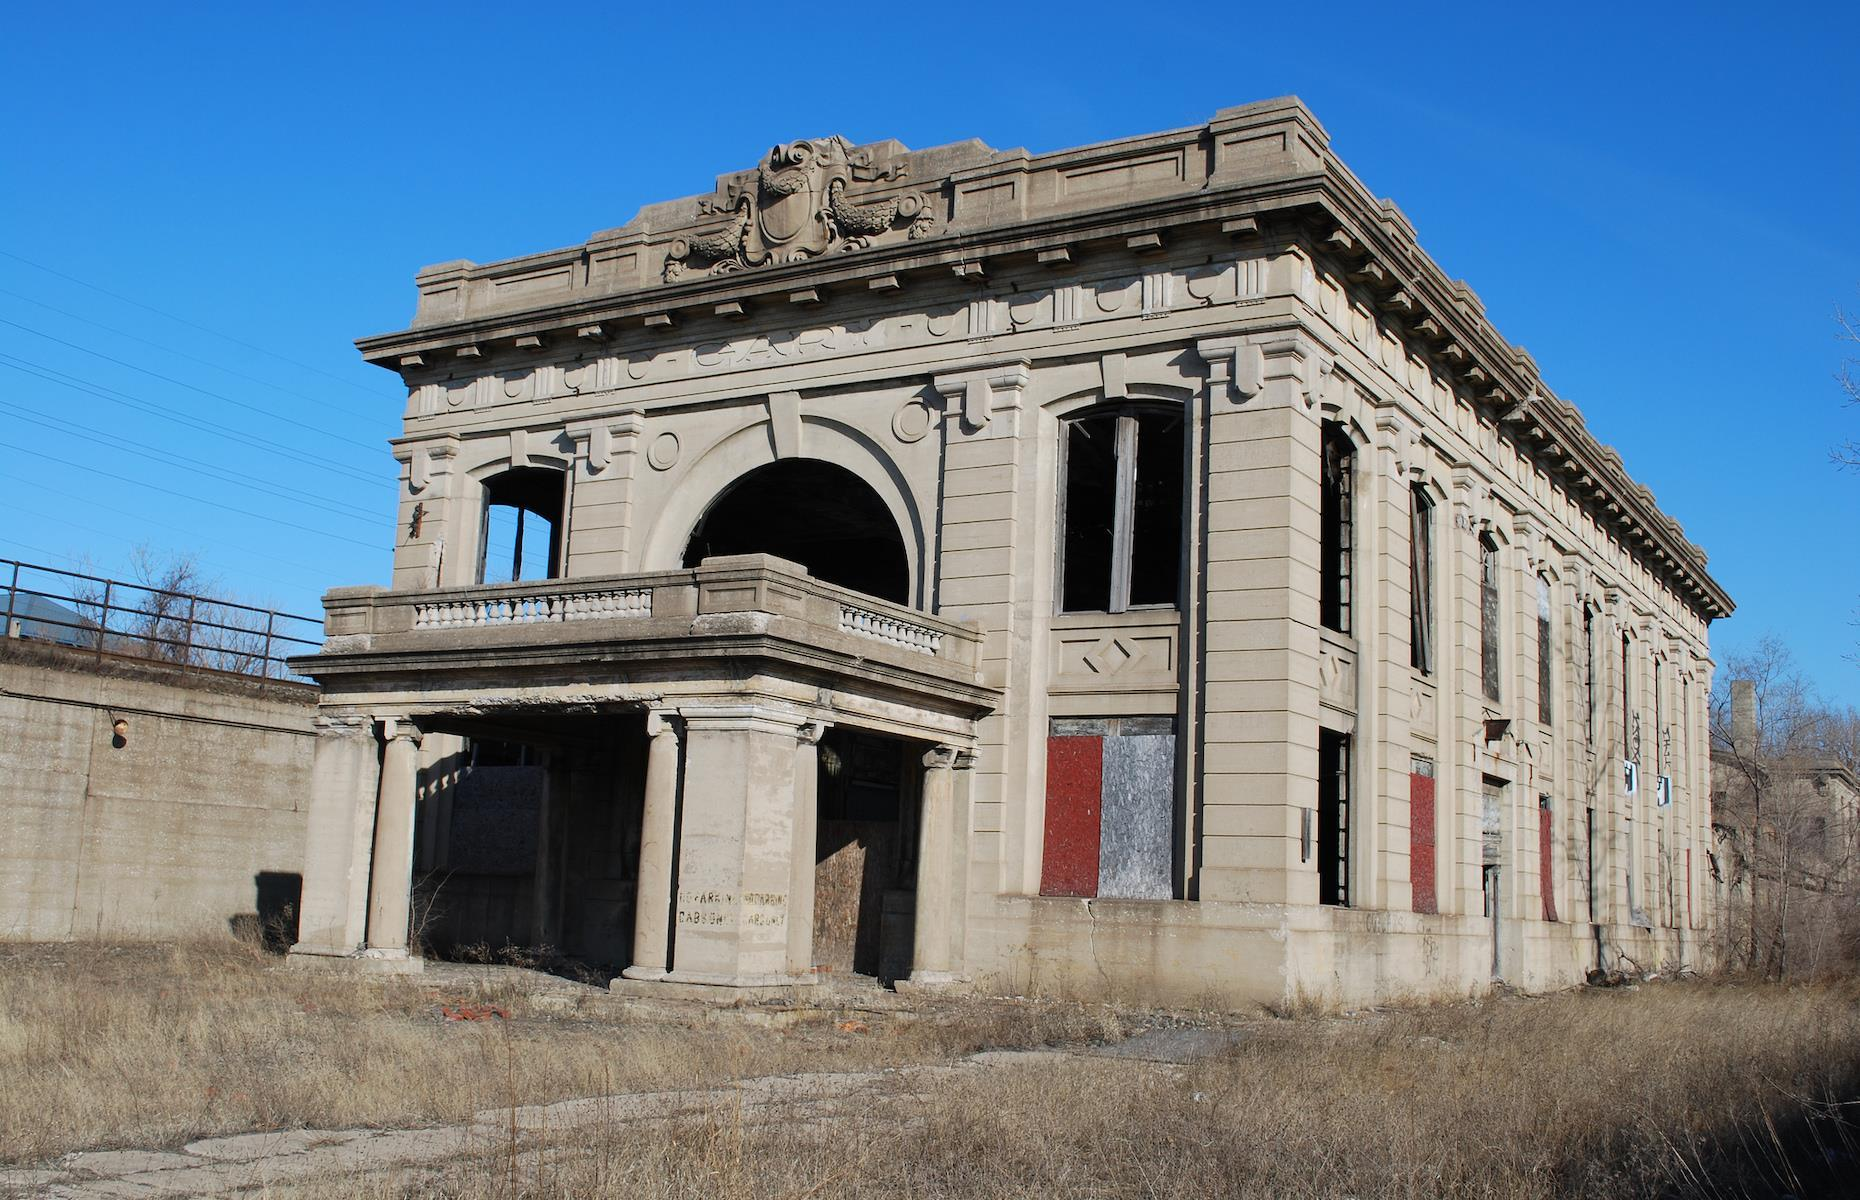 Slide 7 of 33: Now left to decay and decline, this still impressive railway station can be found in Gary, Indiana. Built in 1910 in classic Beaux-Arts style, just a few years after the town itself was founded, the station was used primarily to aid the booming steel industry. The station served several major railway lines, but was shuttered in the 1950s as local industry declined.